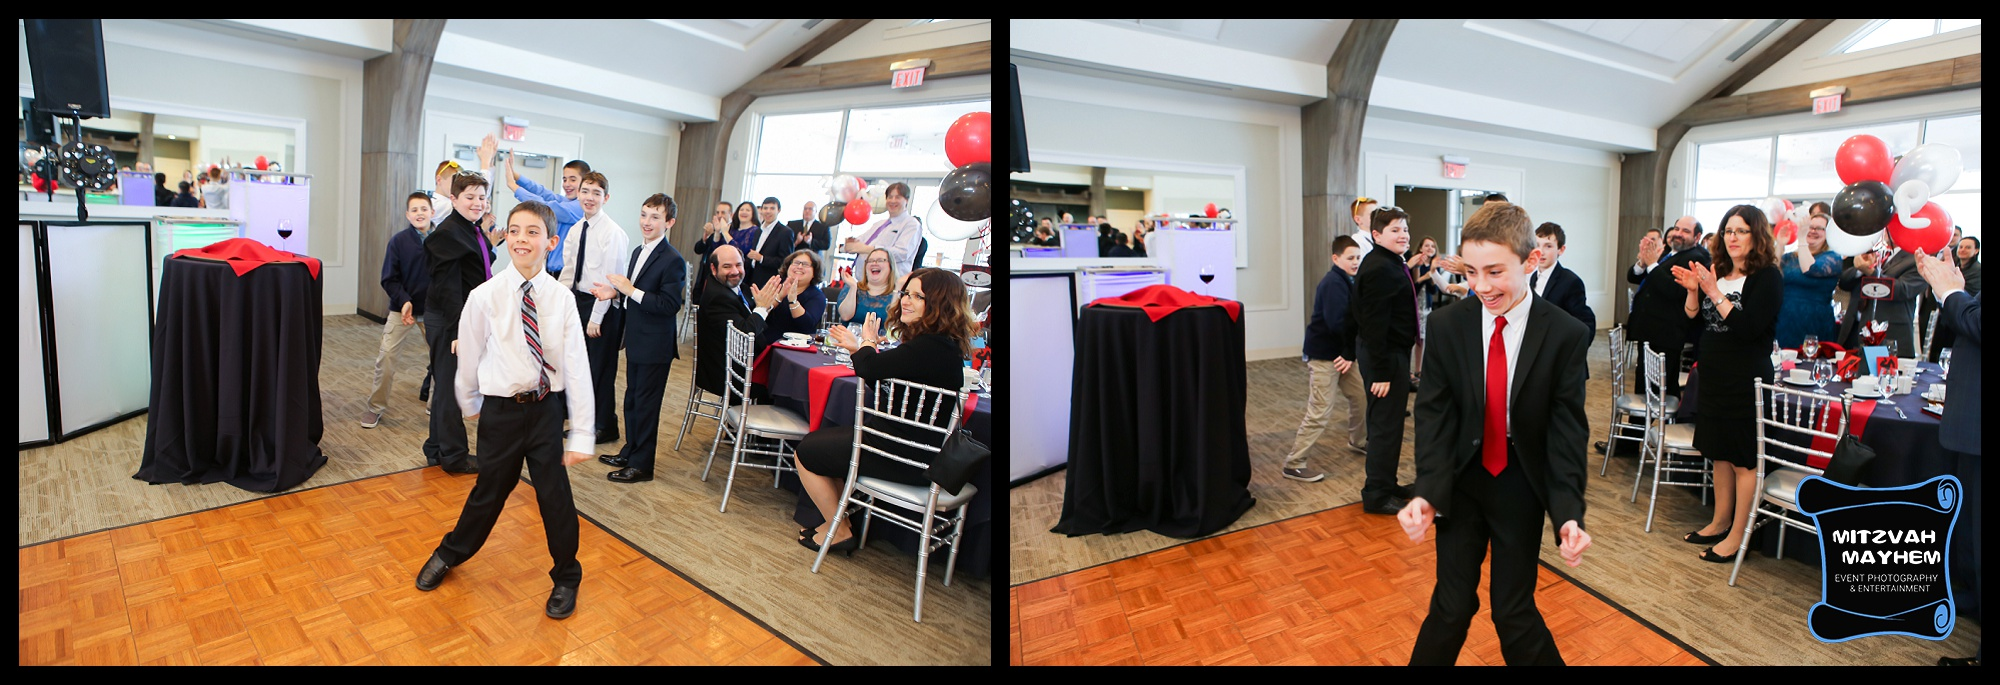 mercer-boathouse-mitzvah-nj-0104.jpg